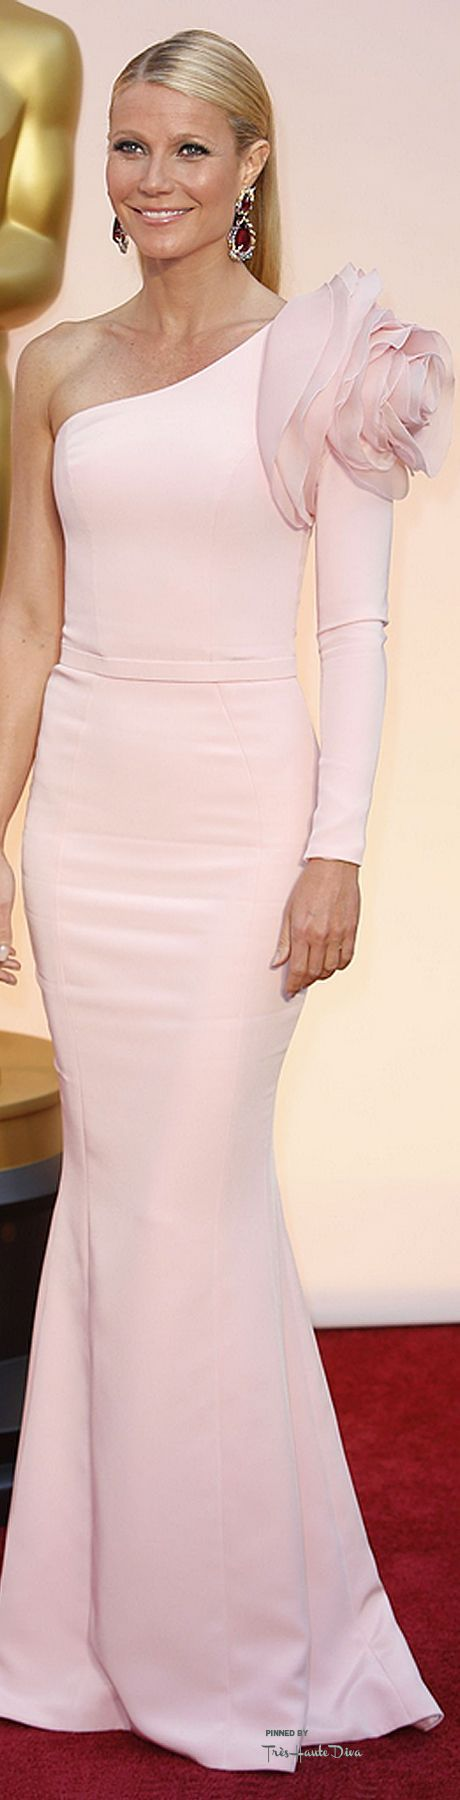 #Oscars 2015 Gwyneth Paltrow in Ralph & Russo: